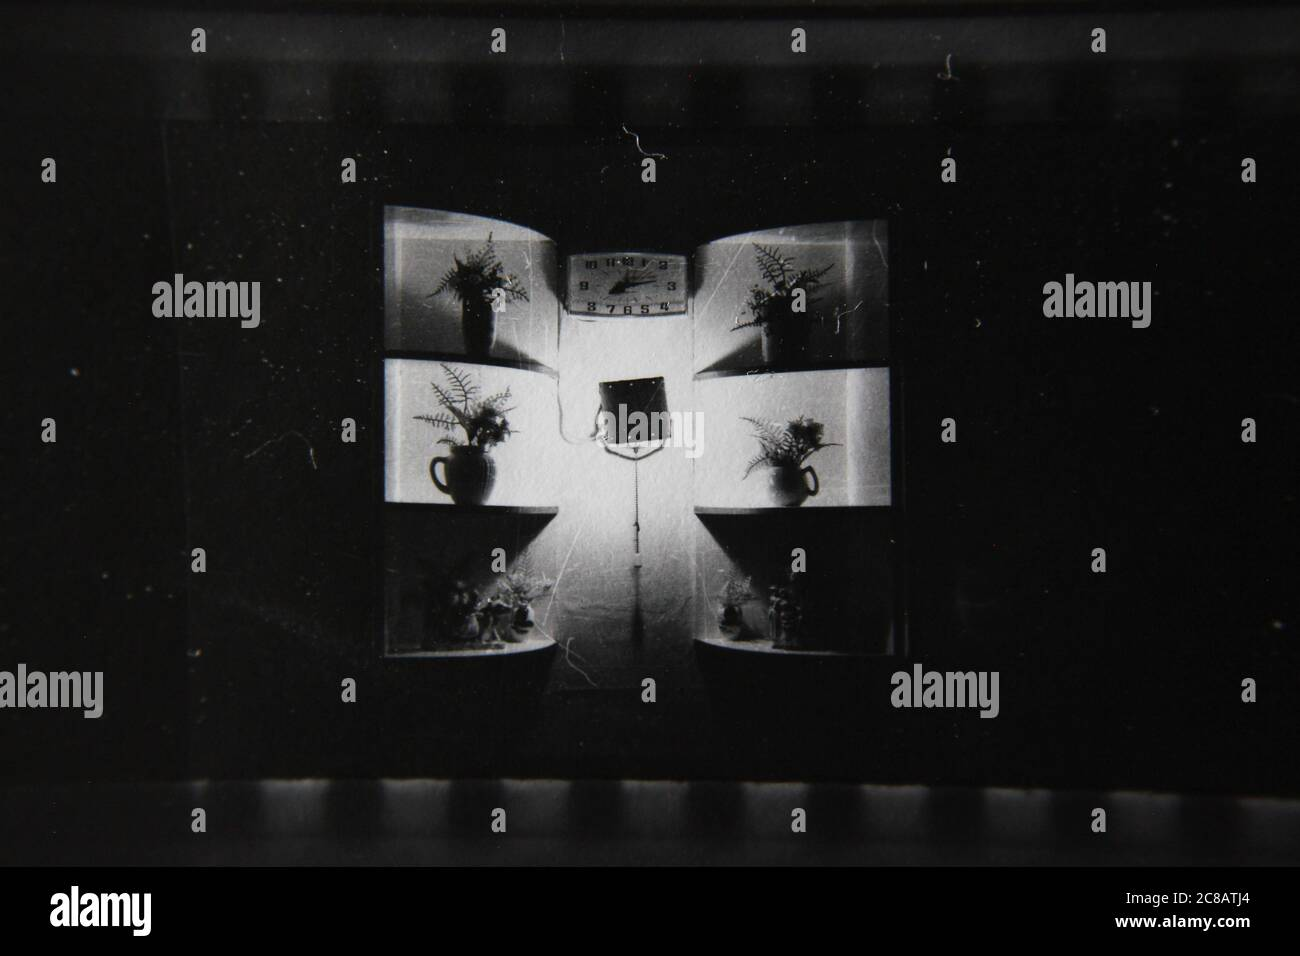 Fine 70s Vintage Contact Print Black And White Photography Of The Kitchen Sink And Cabinets At Grandma S House Stock Photo Alamy